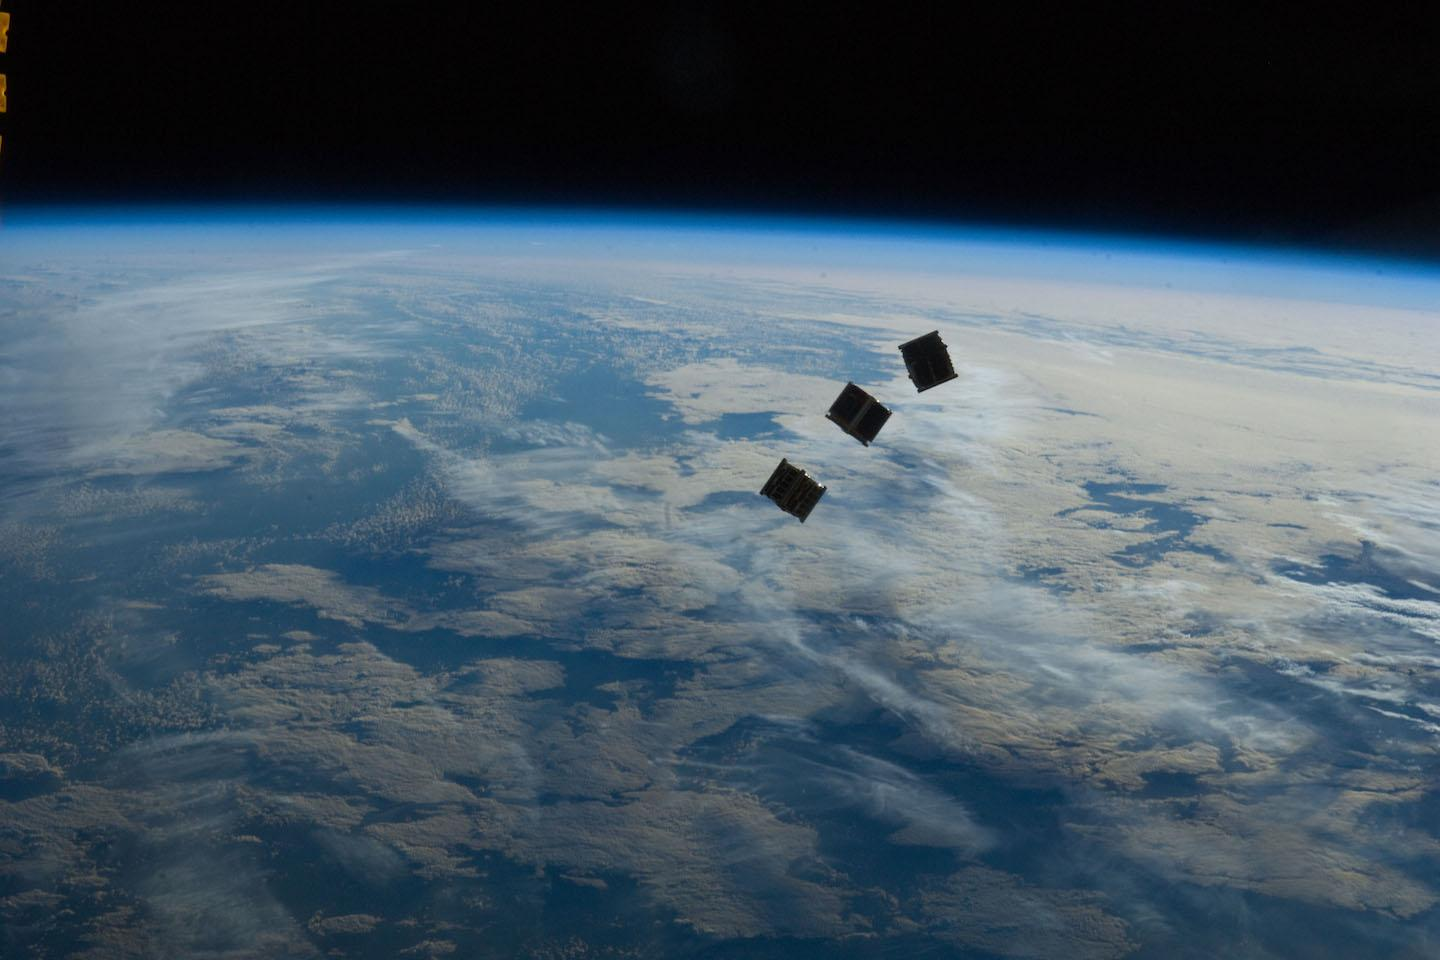 Sky and Space builds network of potential partners